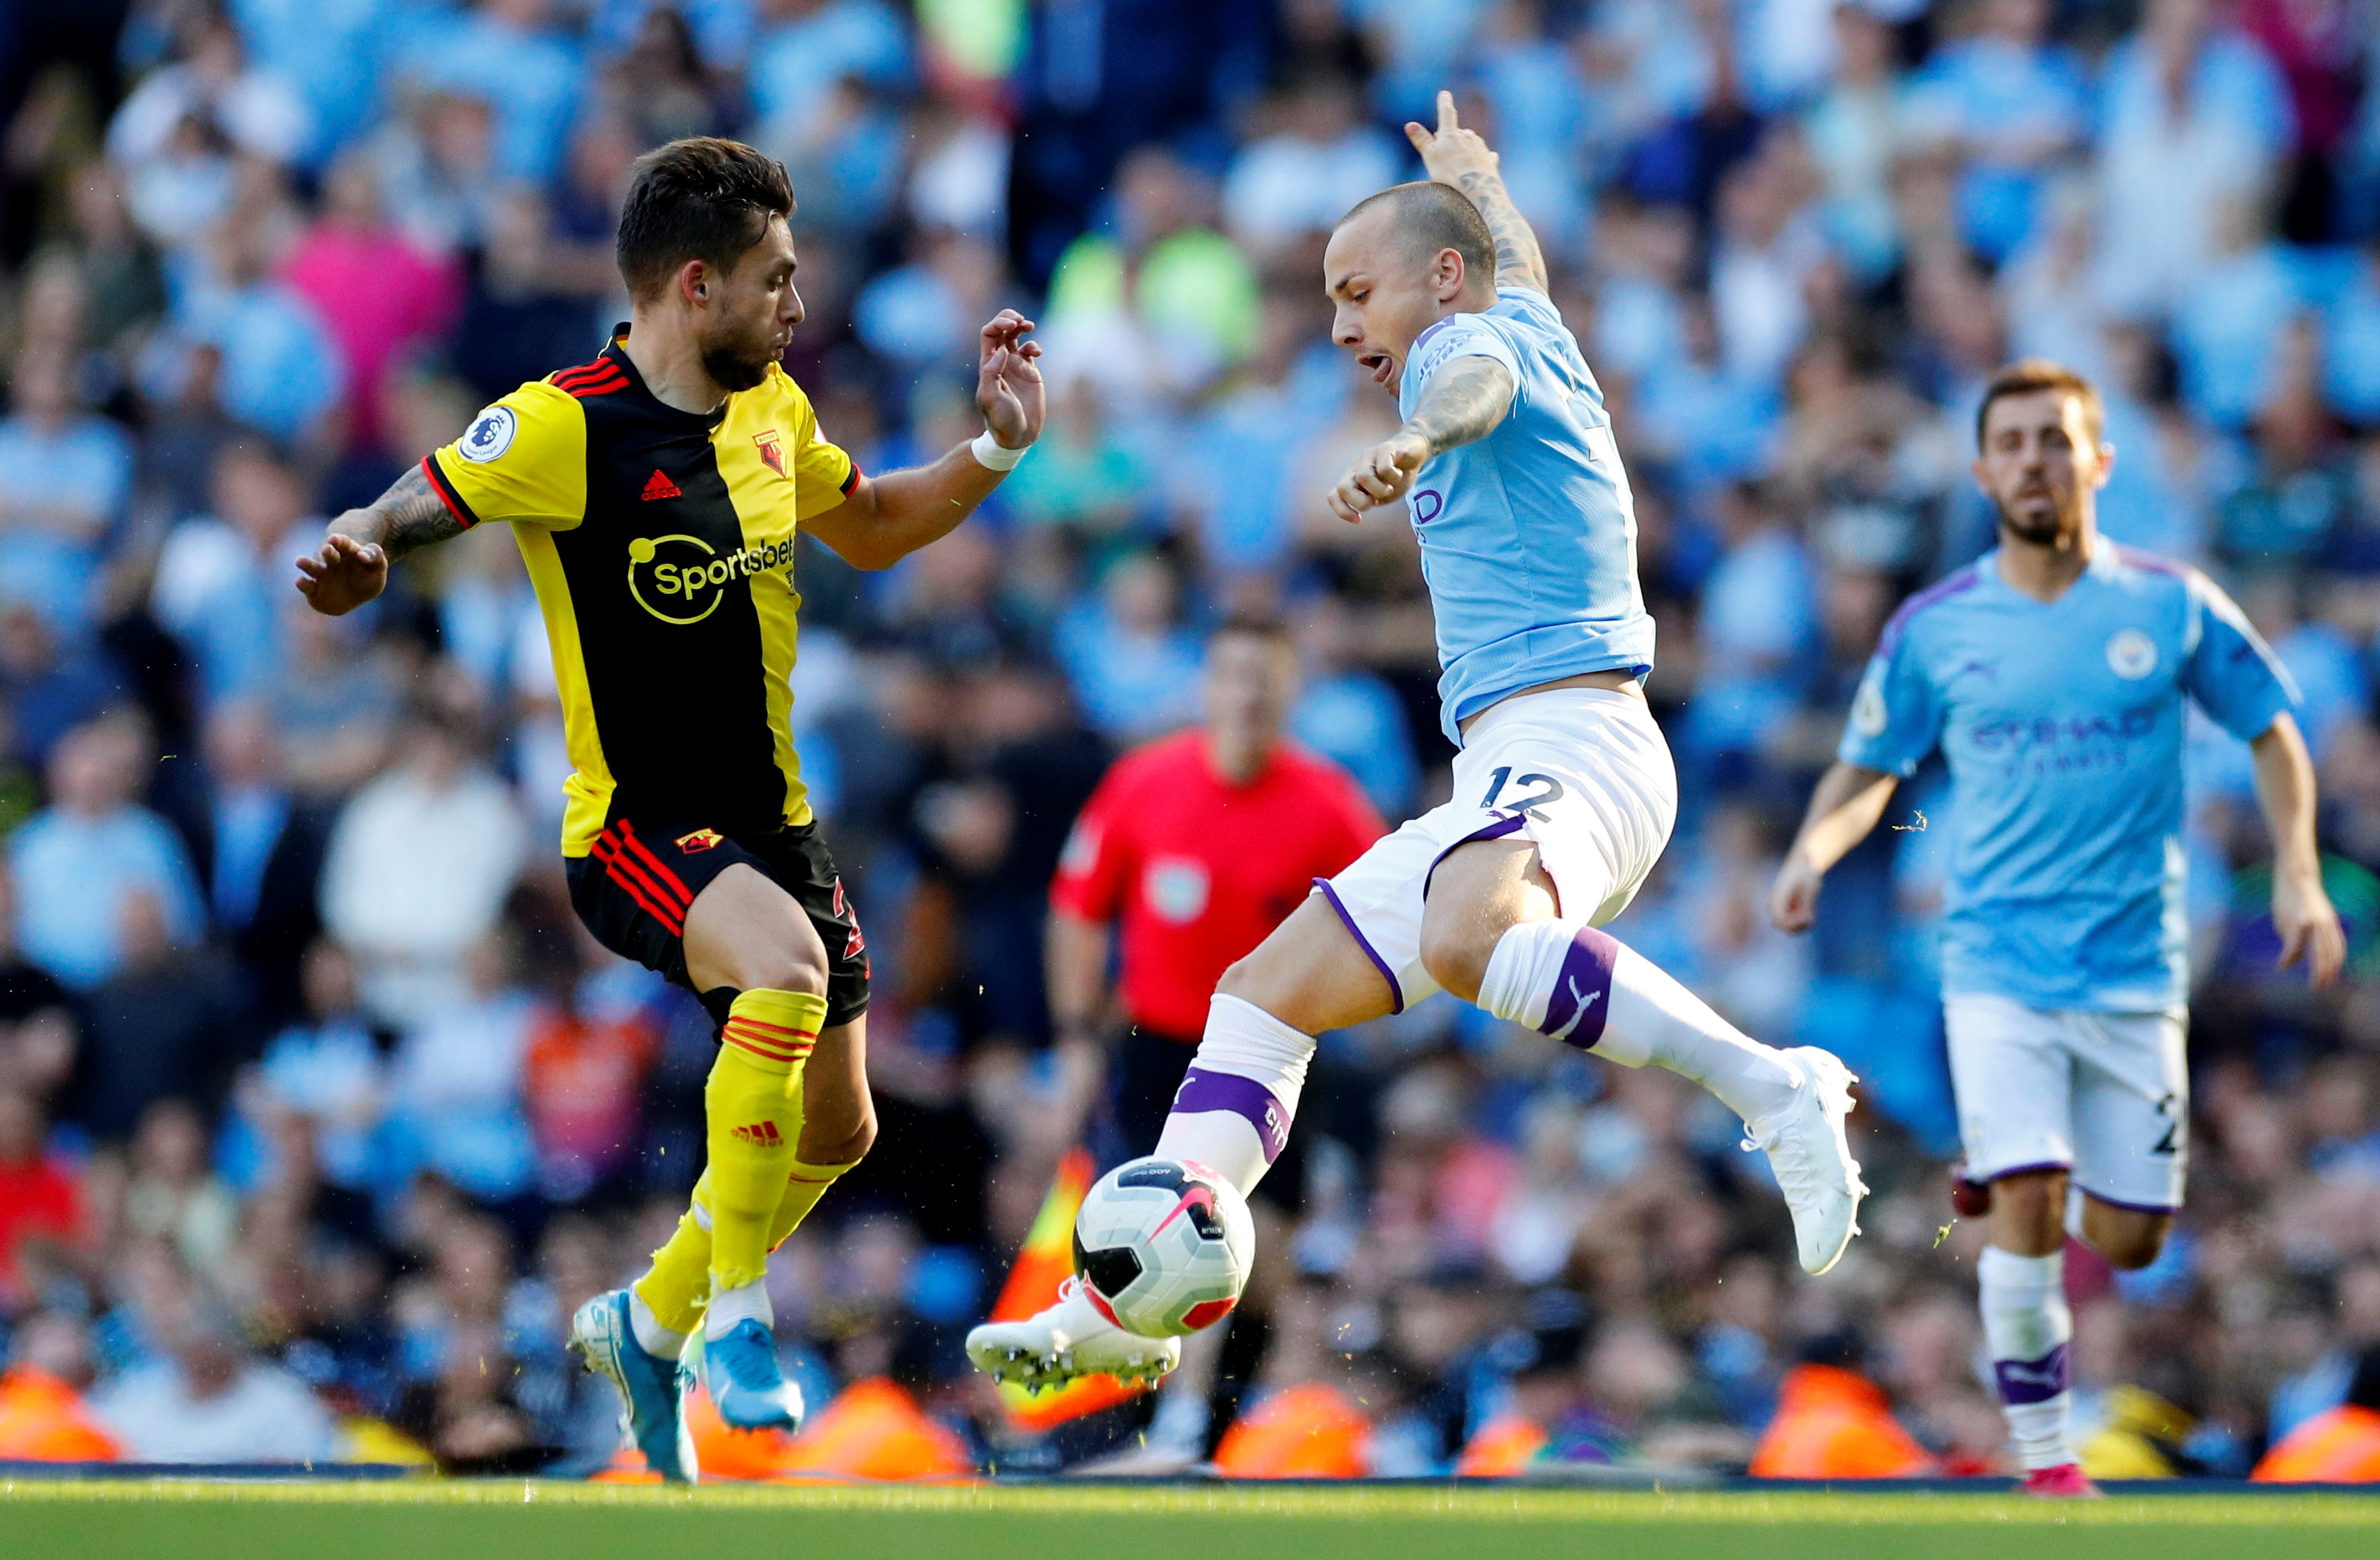 Football - Etranger - Premier League : Manchester City-Watford en direct